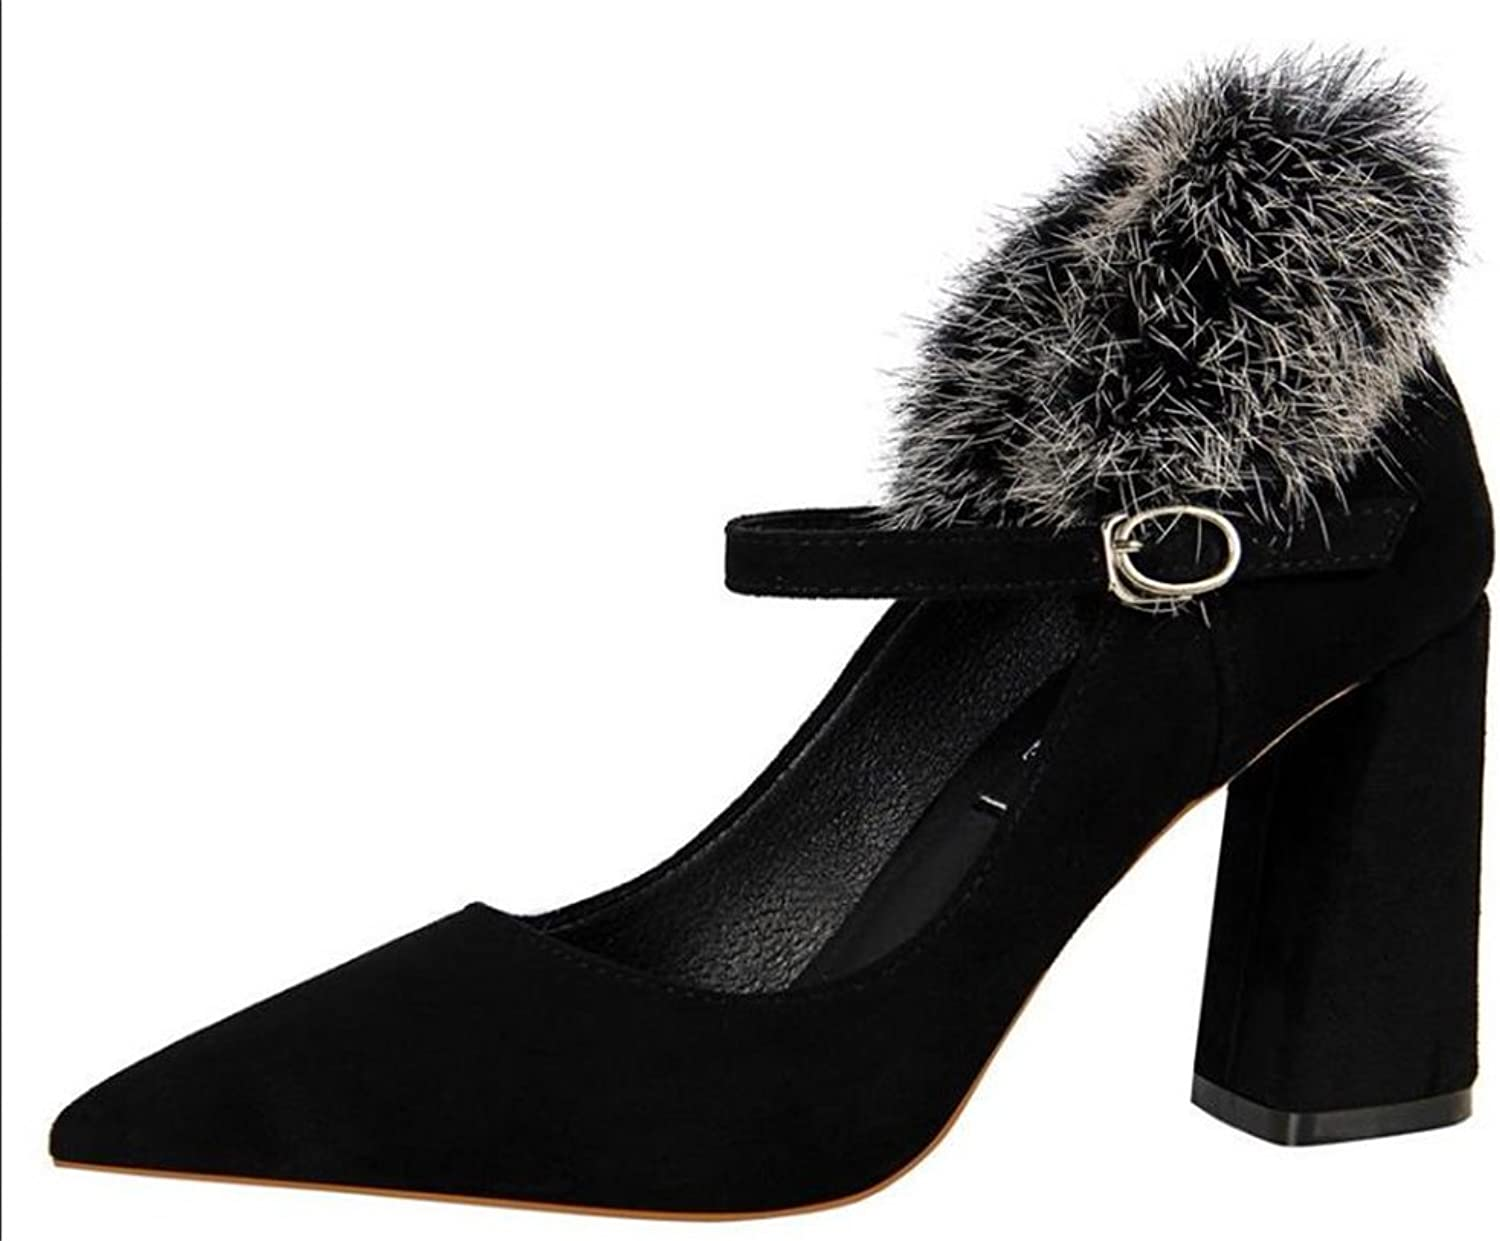 TUYPSHOES Velvet Pointy Toe Stiletto High Heel Fur Slip On Pump Slide shoes Party Dance shoes Work shoes